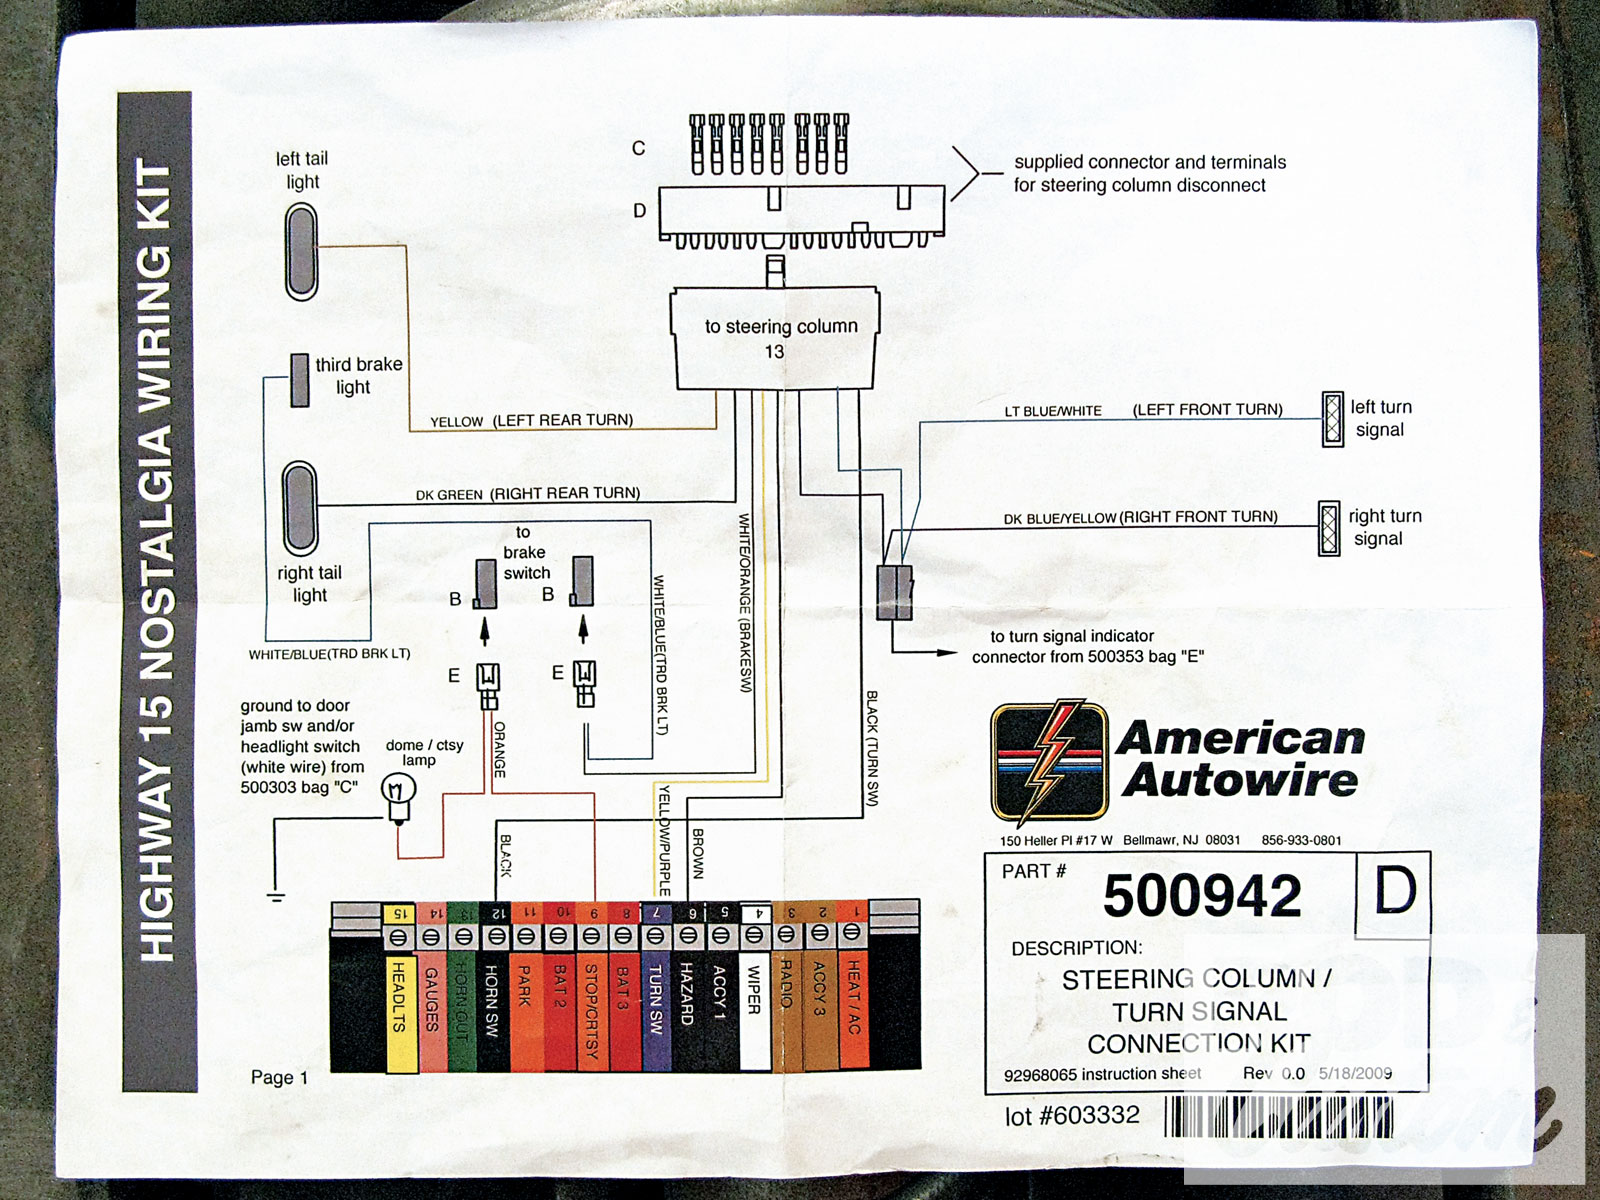 Mustang Steering Column Wiring Diagram Archive Of Automotive 1969 Electrical 74 Dodge Dart Auto Rh Doesitsuit Me 1966